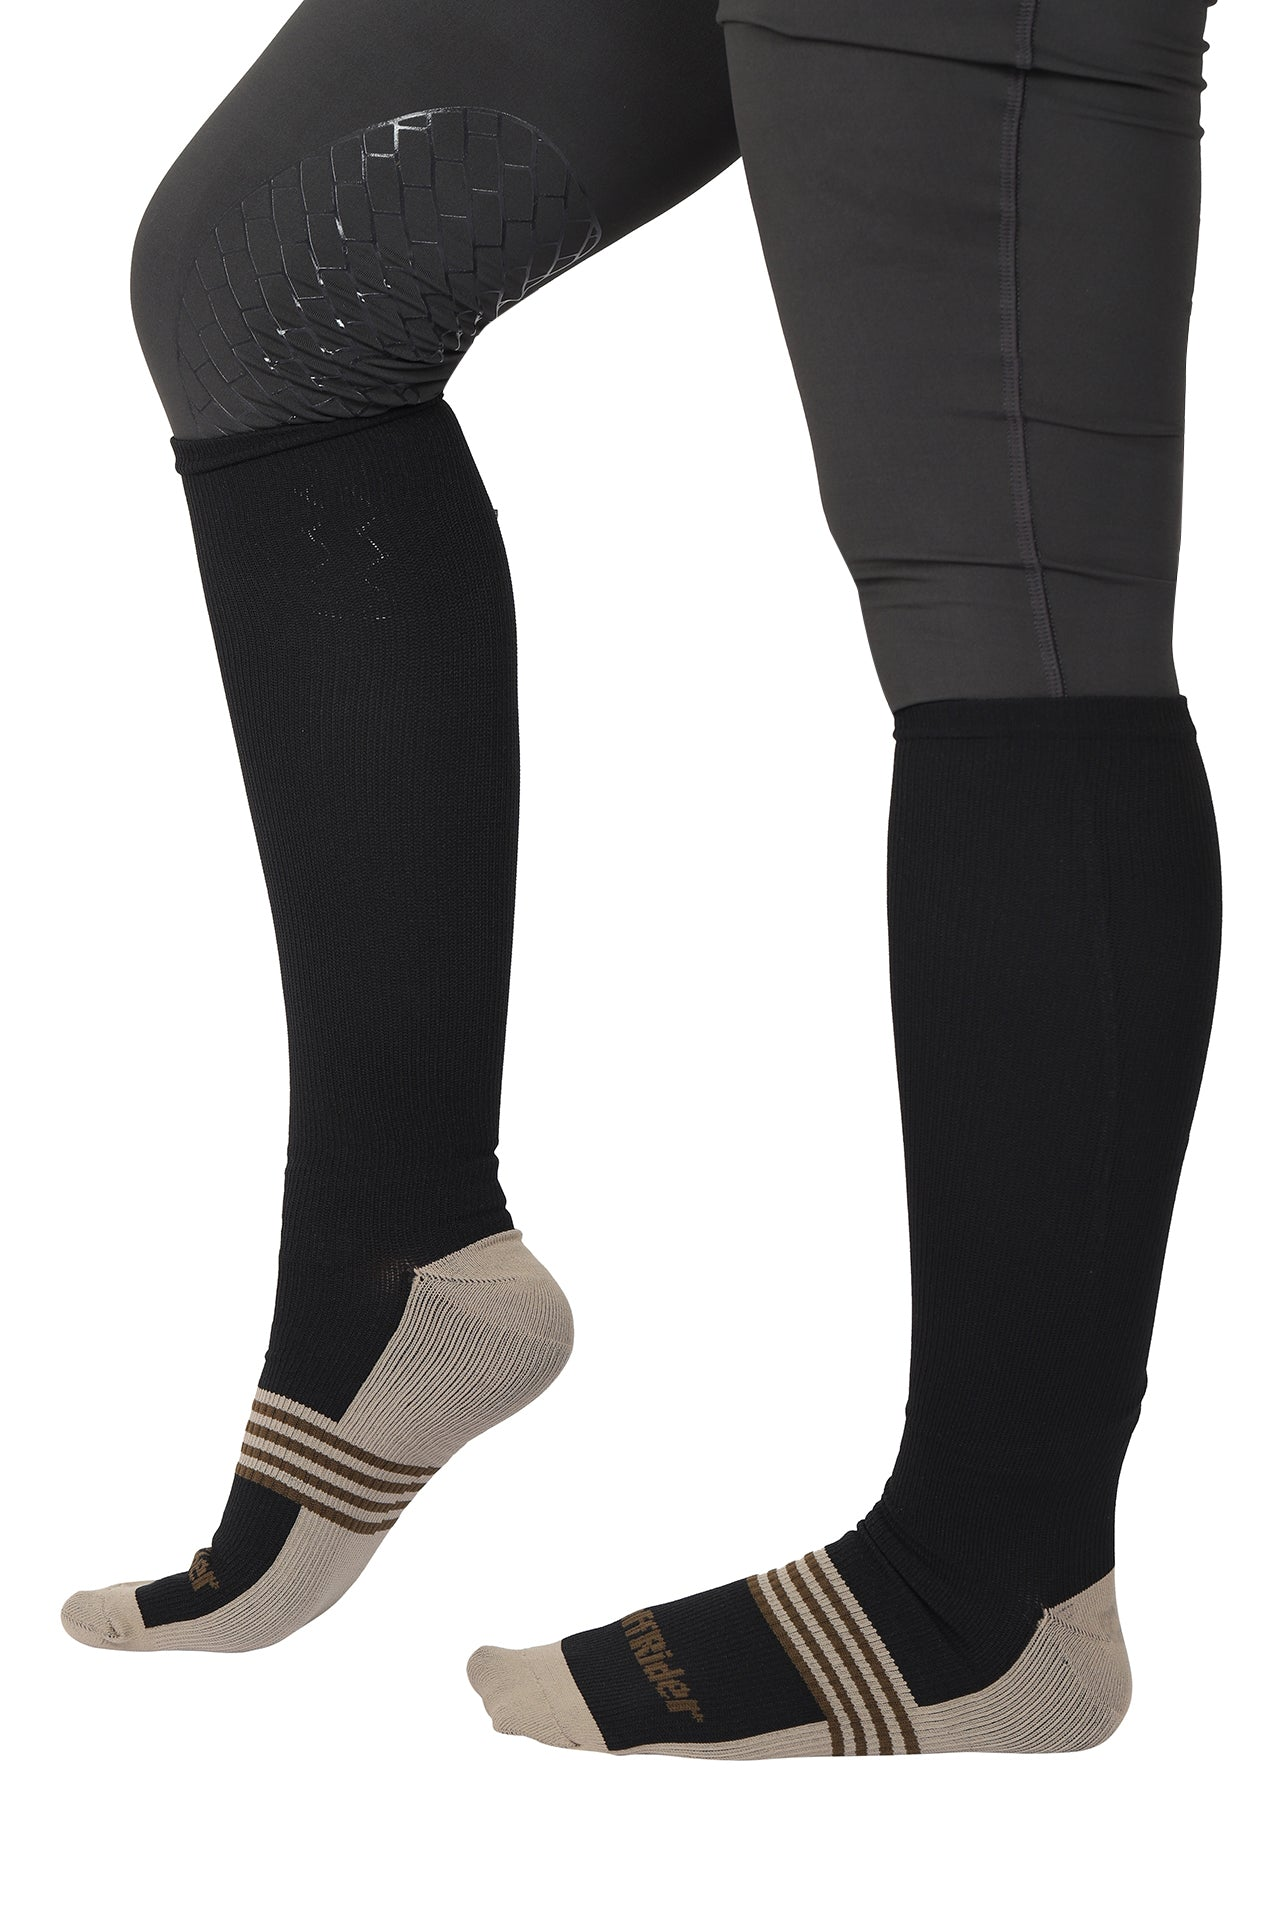 TuffRider Compression Riding Socks_5297